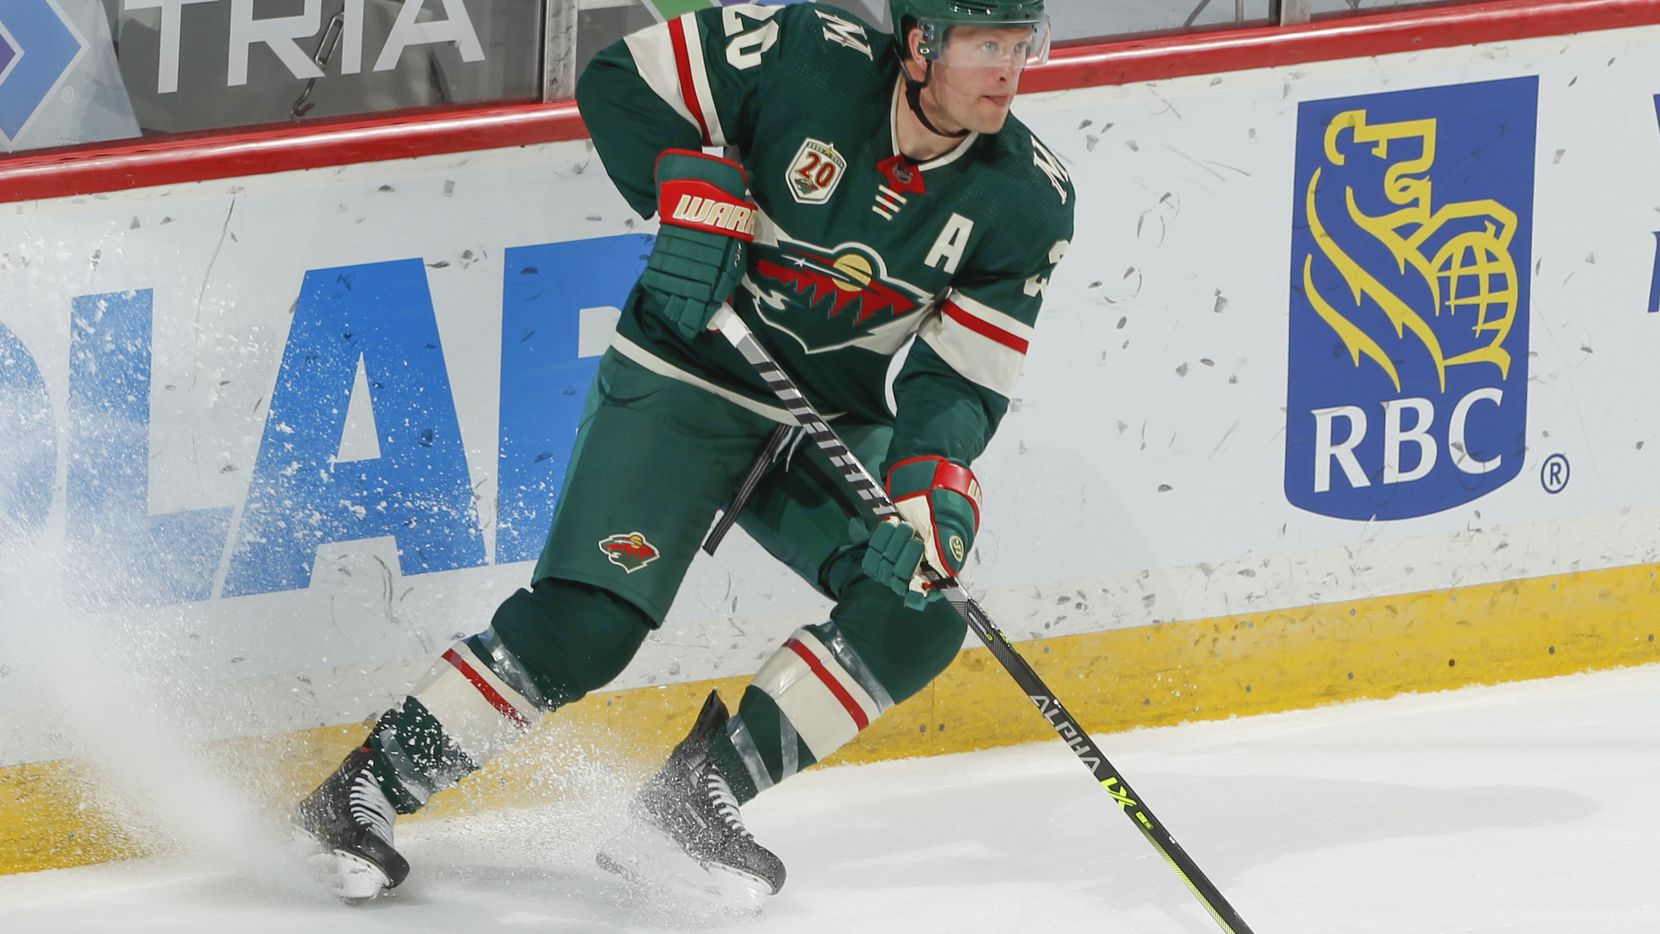 Ryan Suter #20 of the Minnesota Wild skates against the St. Louis Blues during the game at the Xcel Energy Center on May 1, 2021 in Saint Paul, Minnesota.